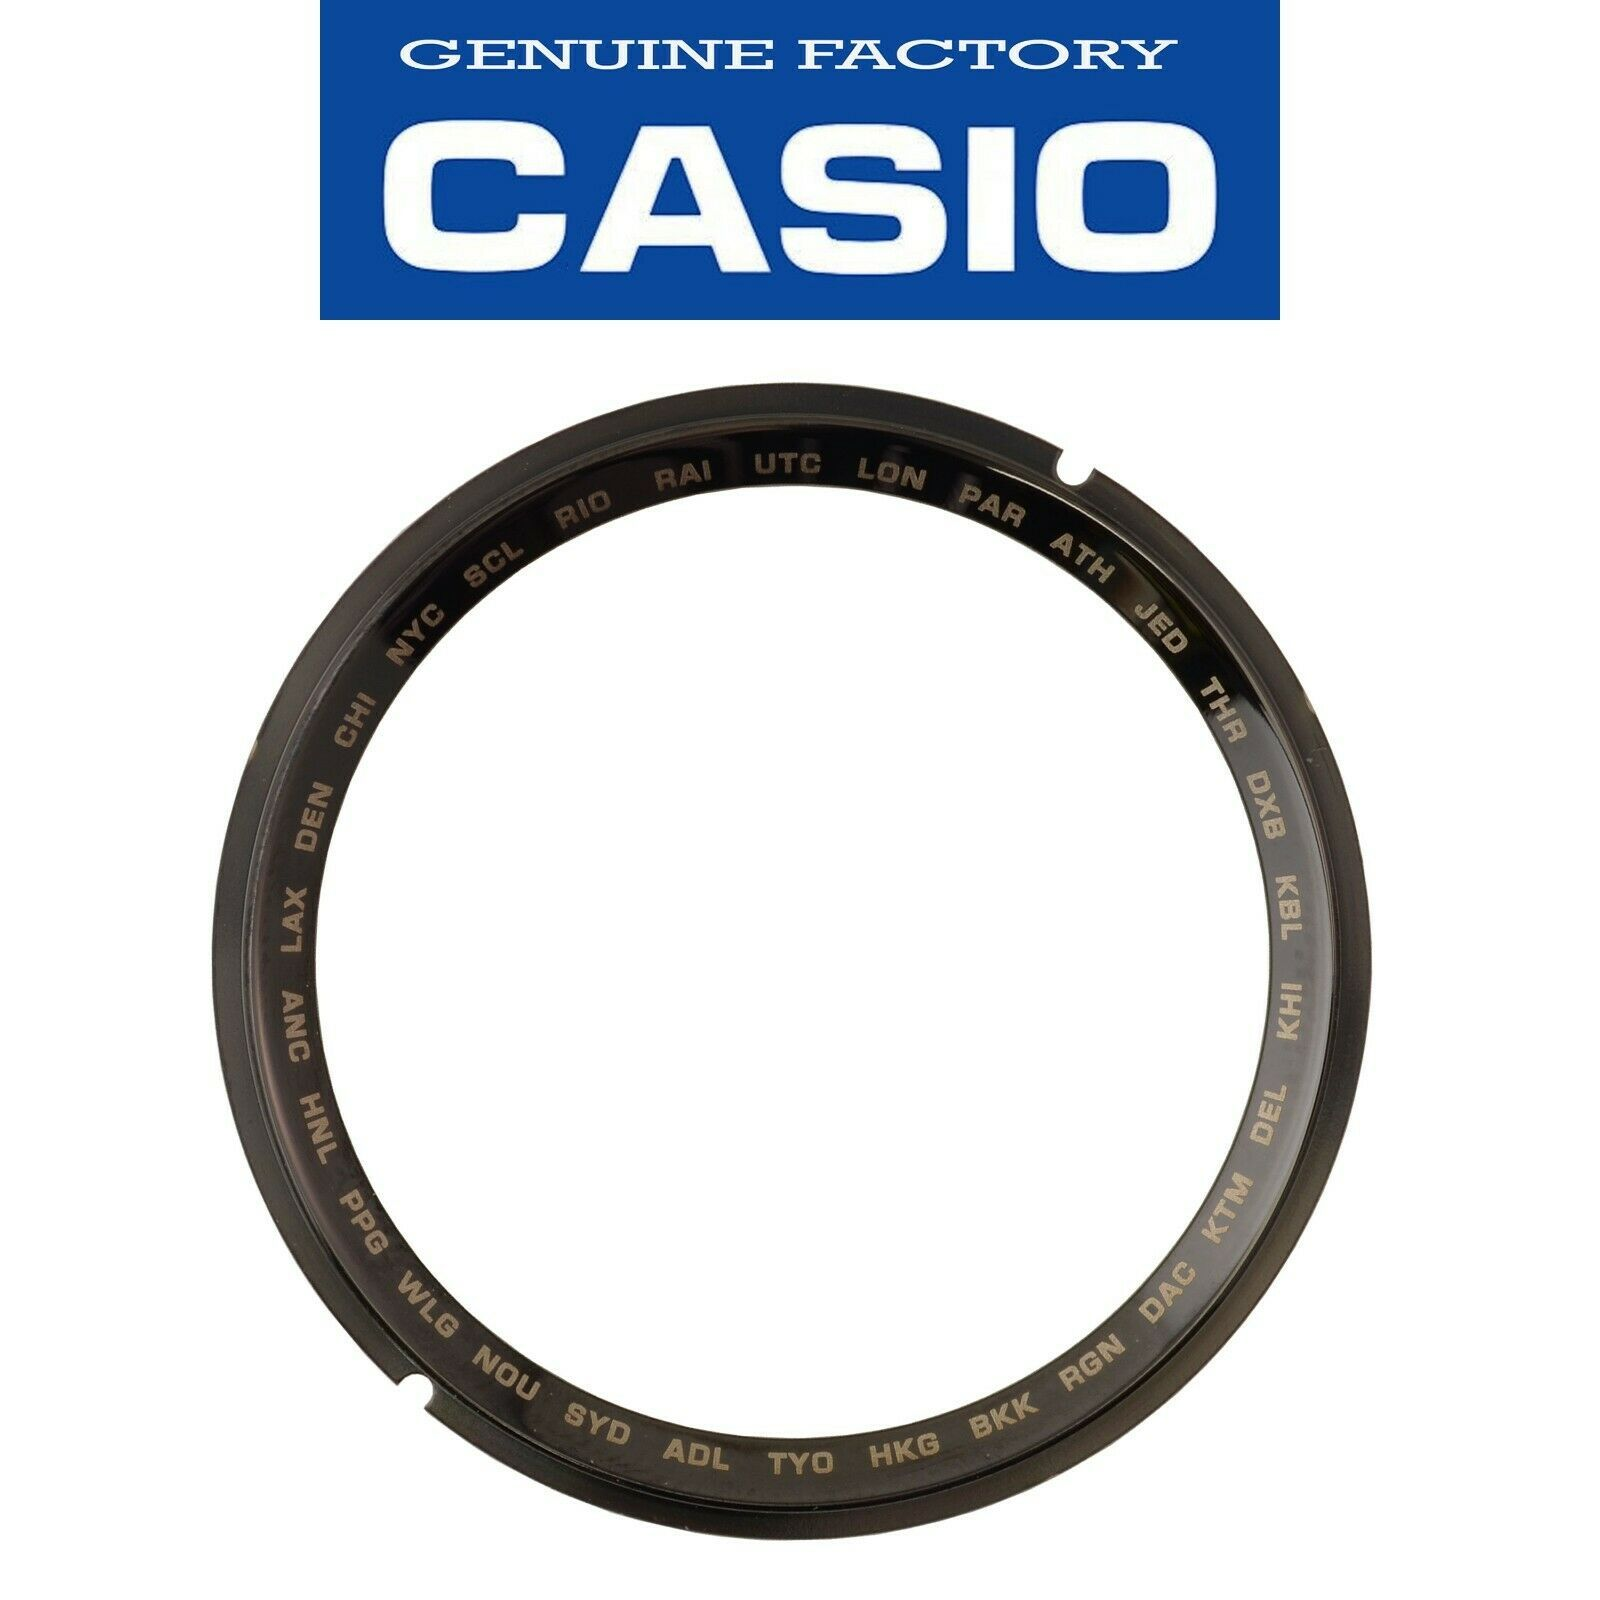 Primary image for Genuine CASIO G-SHOCK Watch Band Bezel Shell Inner Black GWG-1000-1A